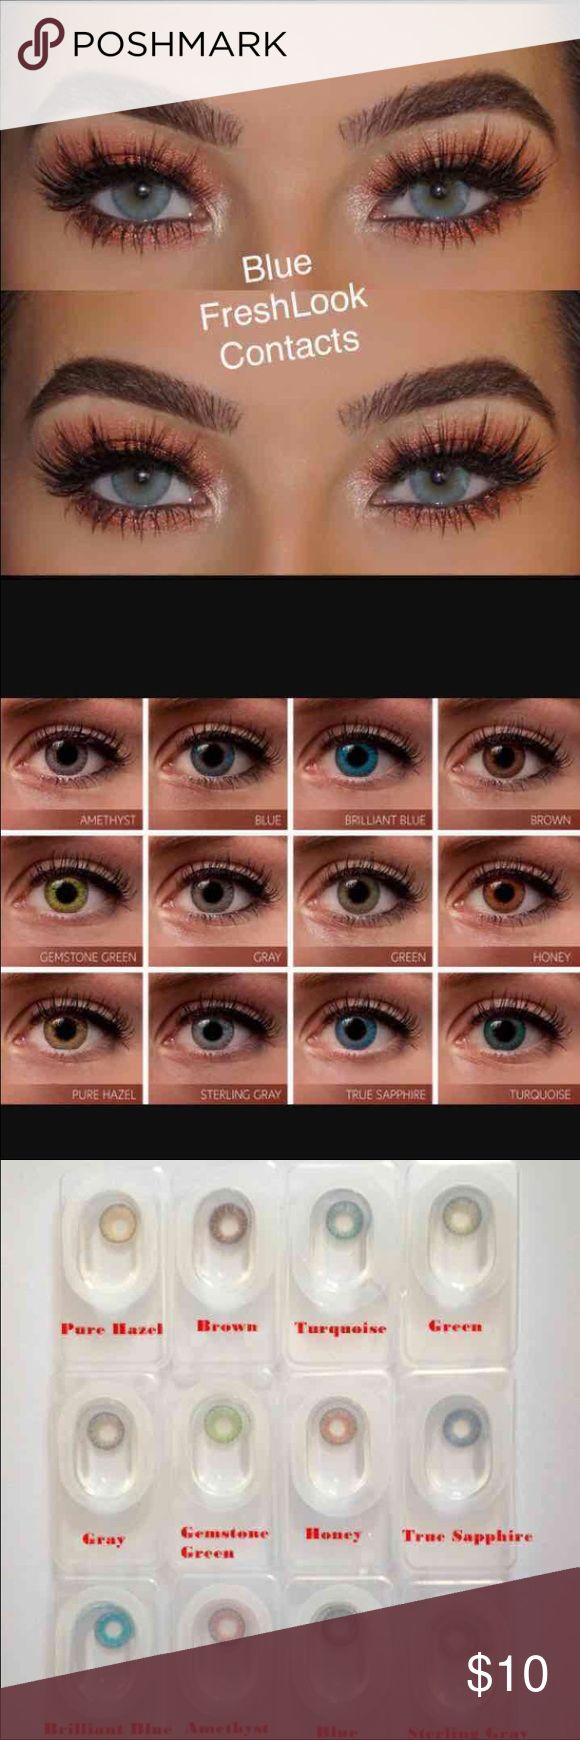 """Blue FreshLook Contacts Available Colors All Colors  Please message me what color you would like  One Pair New Reusable Non prescription Bundle and save...  2 pair =$18  3Pair = $27  """"FreshLook Colorblends contact lenses offer a wide palette of beautiful colors to enhance your eye color in a natural way.  Condition: Brand new Brand: FreshLook Colorblends Expiration: 2020 Diameter: 14.5 Price per box: 1 box = 1 pair Shipping: Same day or Next day   Nike, Victoria Secret   Tags: High quality…"""